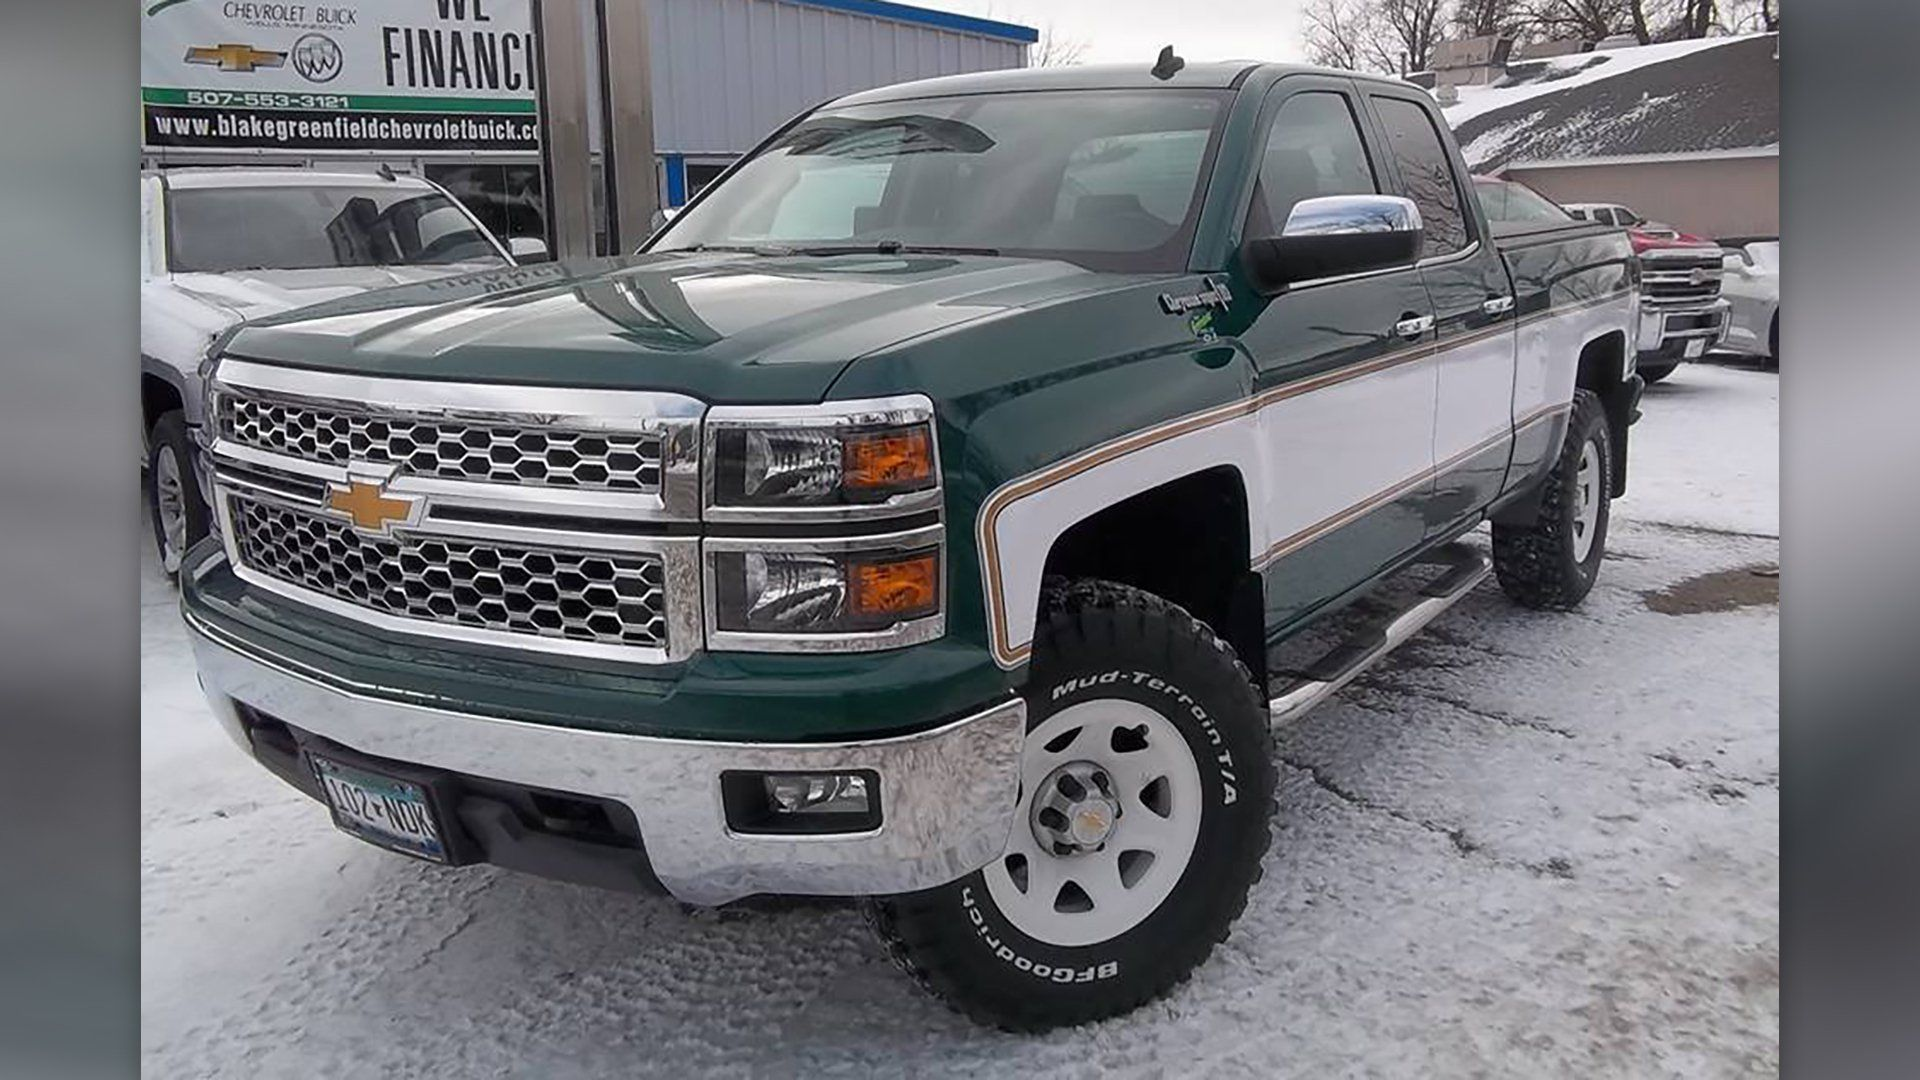 take at hands quick look news on the silverado reaper s sale chevrolet a for roadshow here first